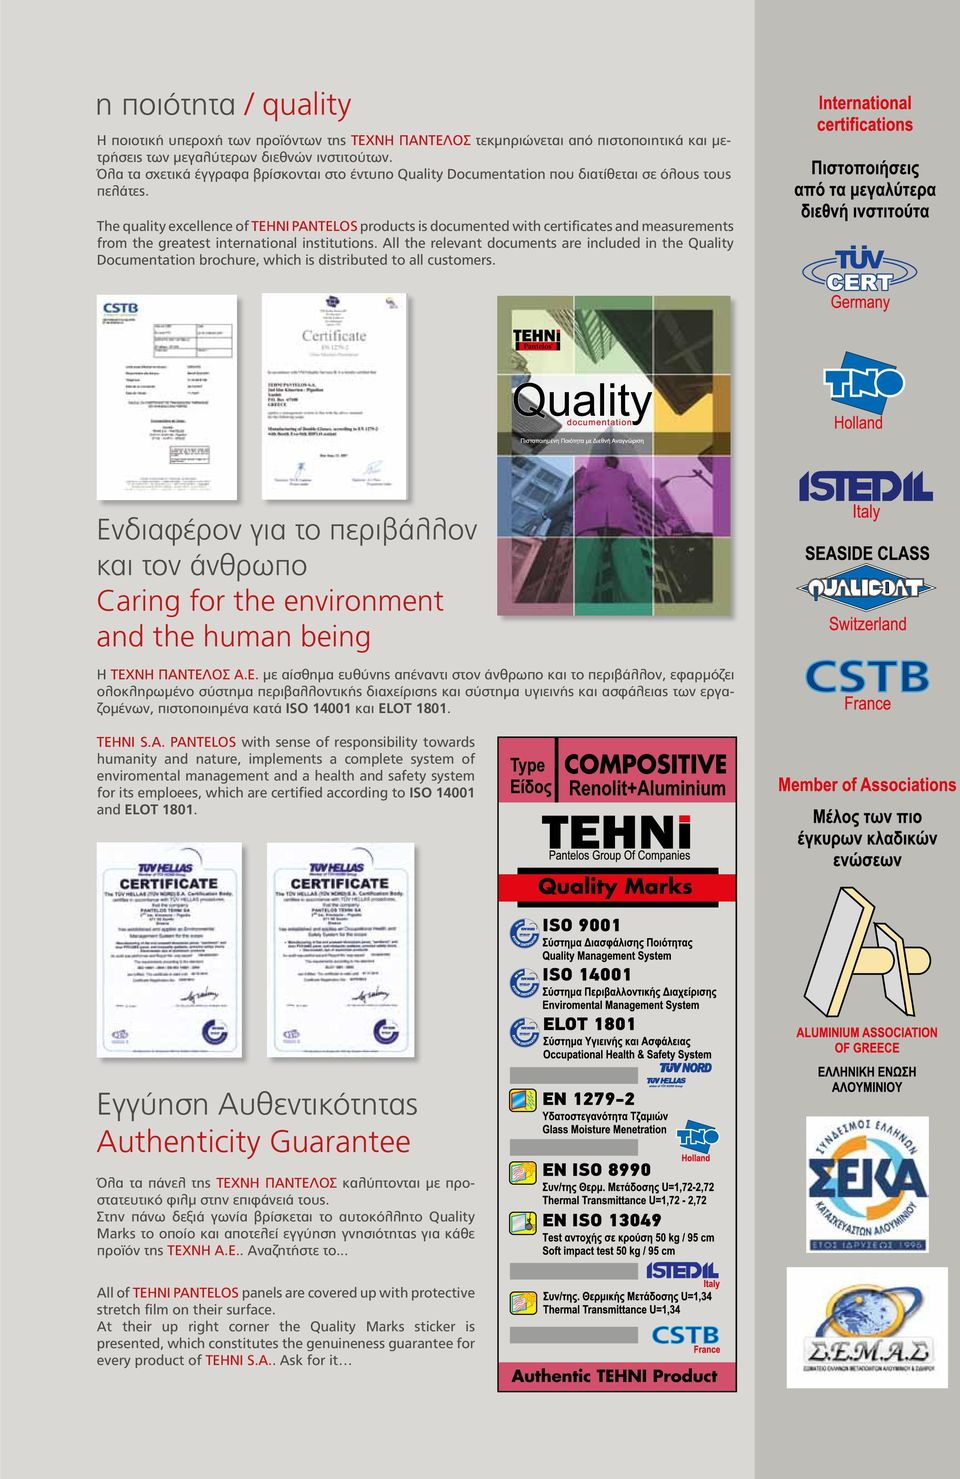 The quality excellence of TEHNI PANTELOS products is documented with certificates and measurements from the greatest international institutions.